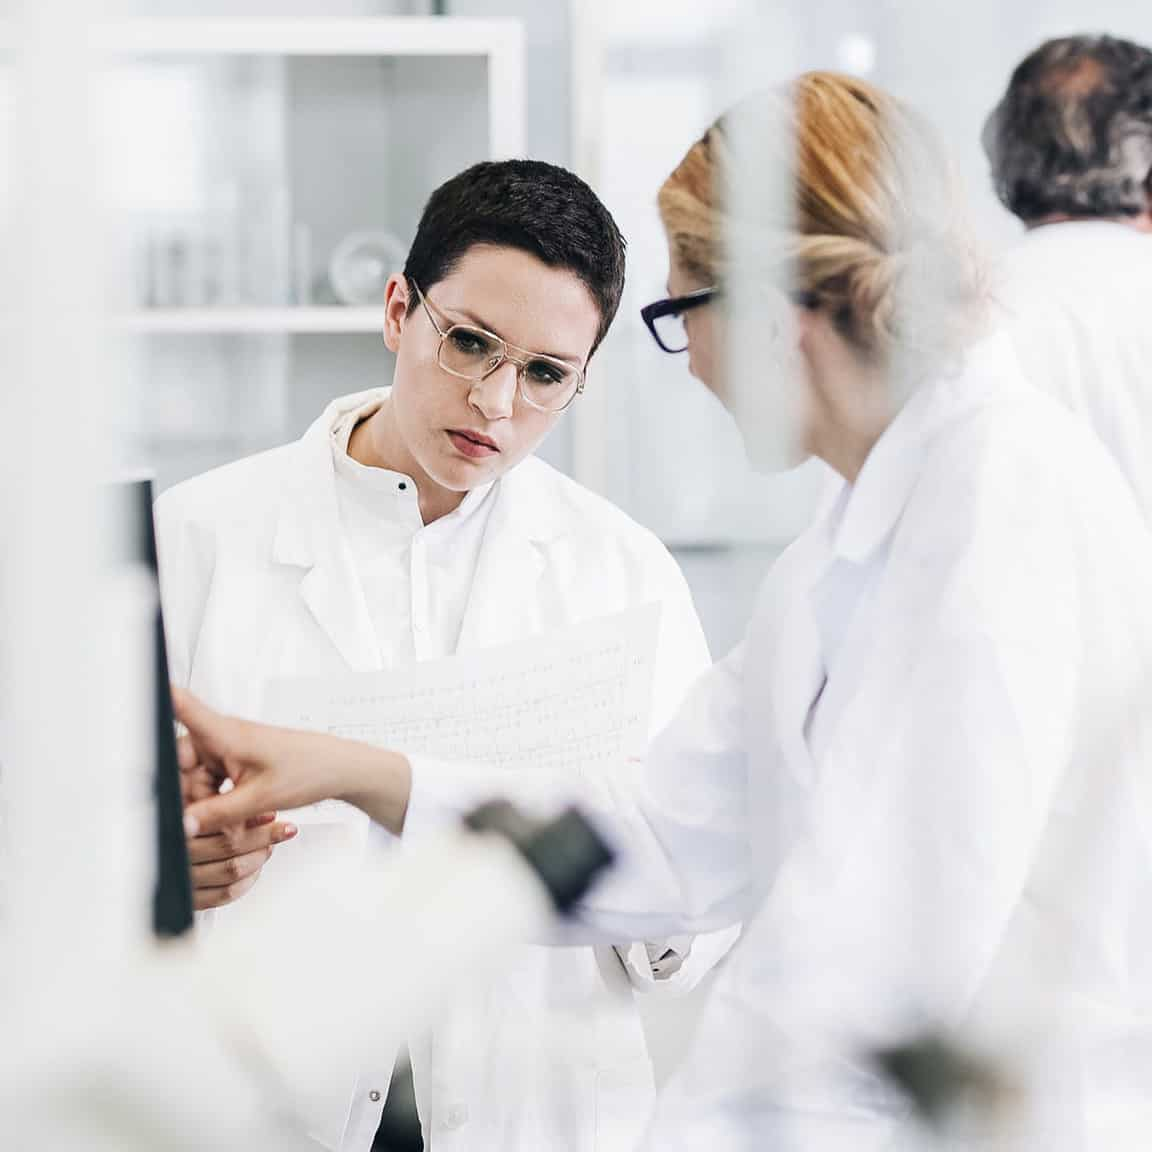 Paige AI bring therapeutics to marked faster